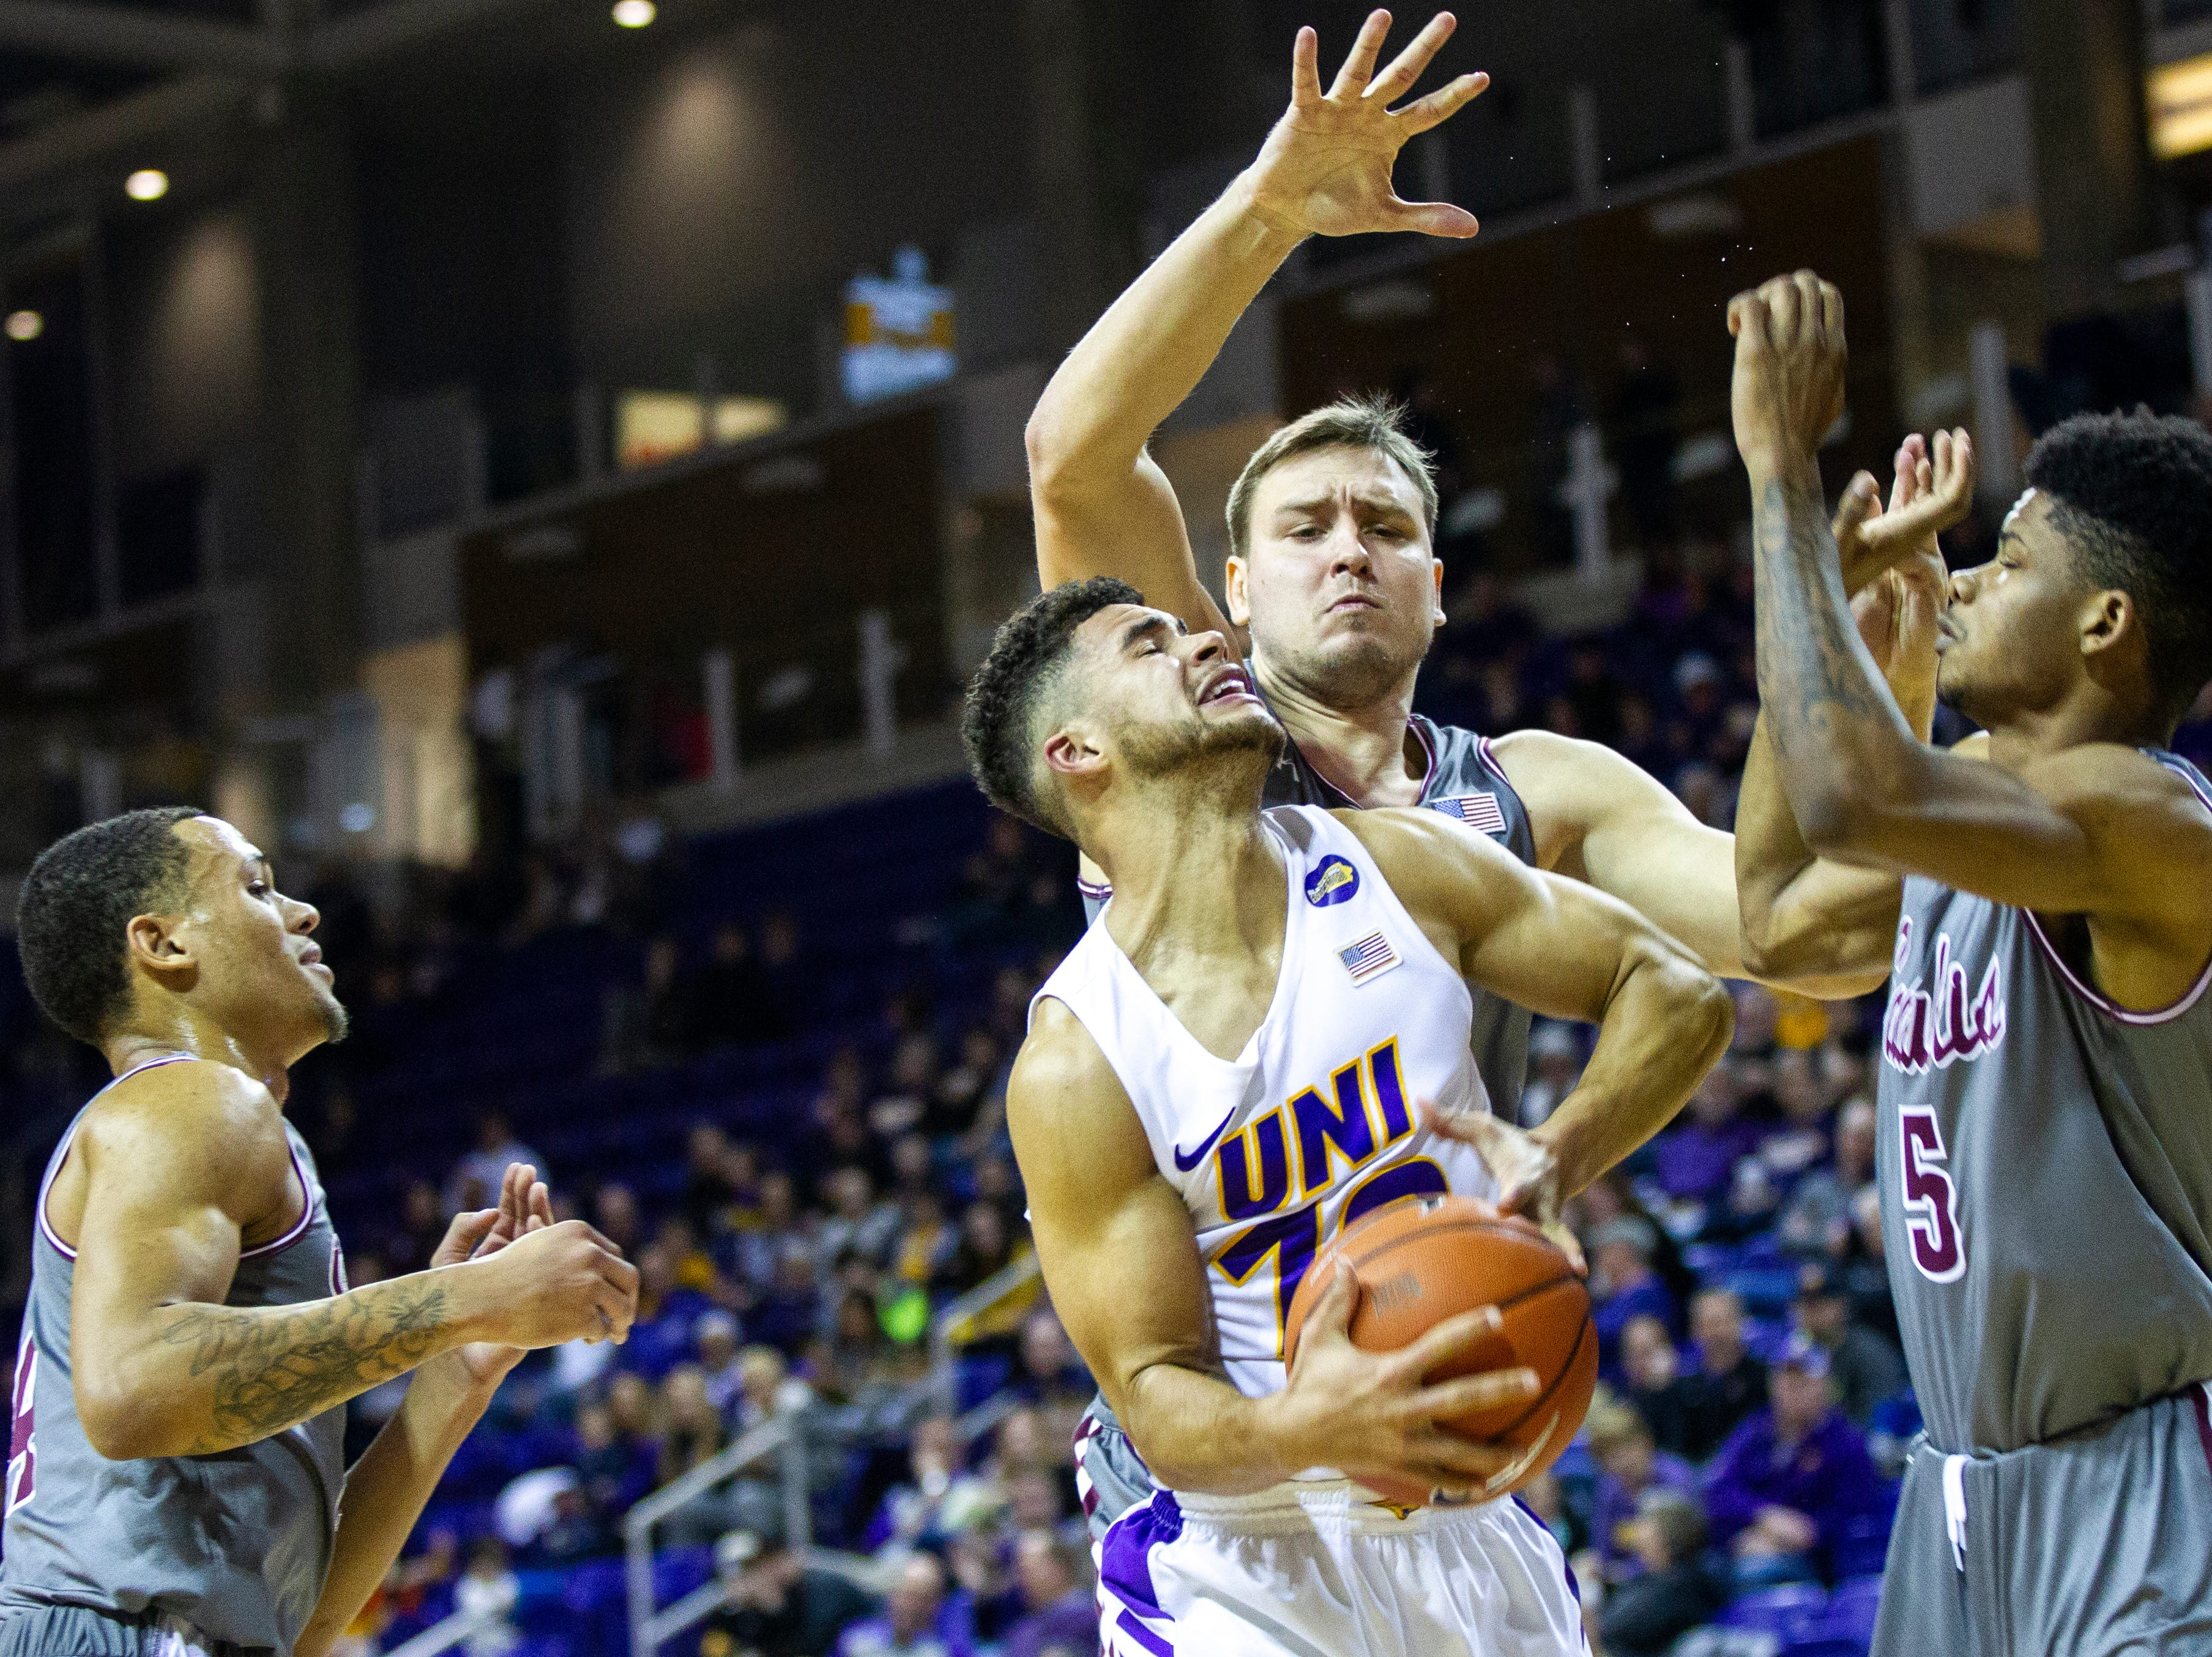 Northern Iowa guard Mile Wentzien gets fouled while going to the basket during a NCAA Missouri Valley Conference men's basketball game on Saturday, Jan. 5, 2019, at the McLeod Center in Cedar Falls, Iowa.